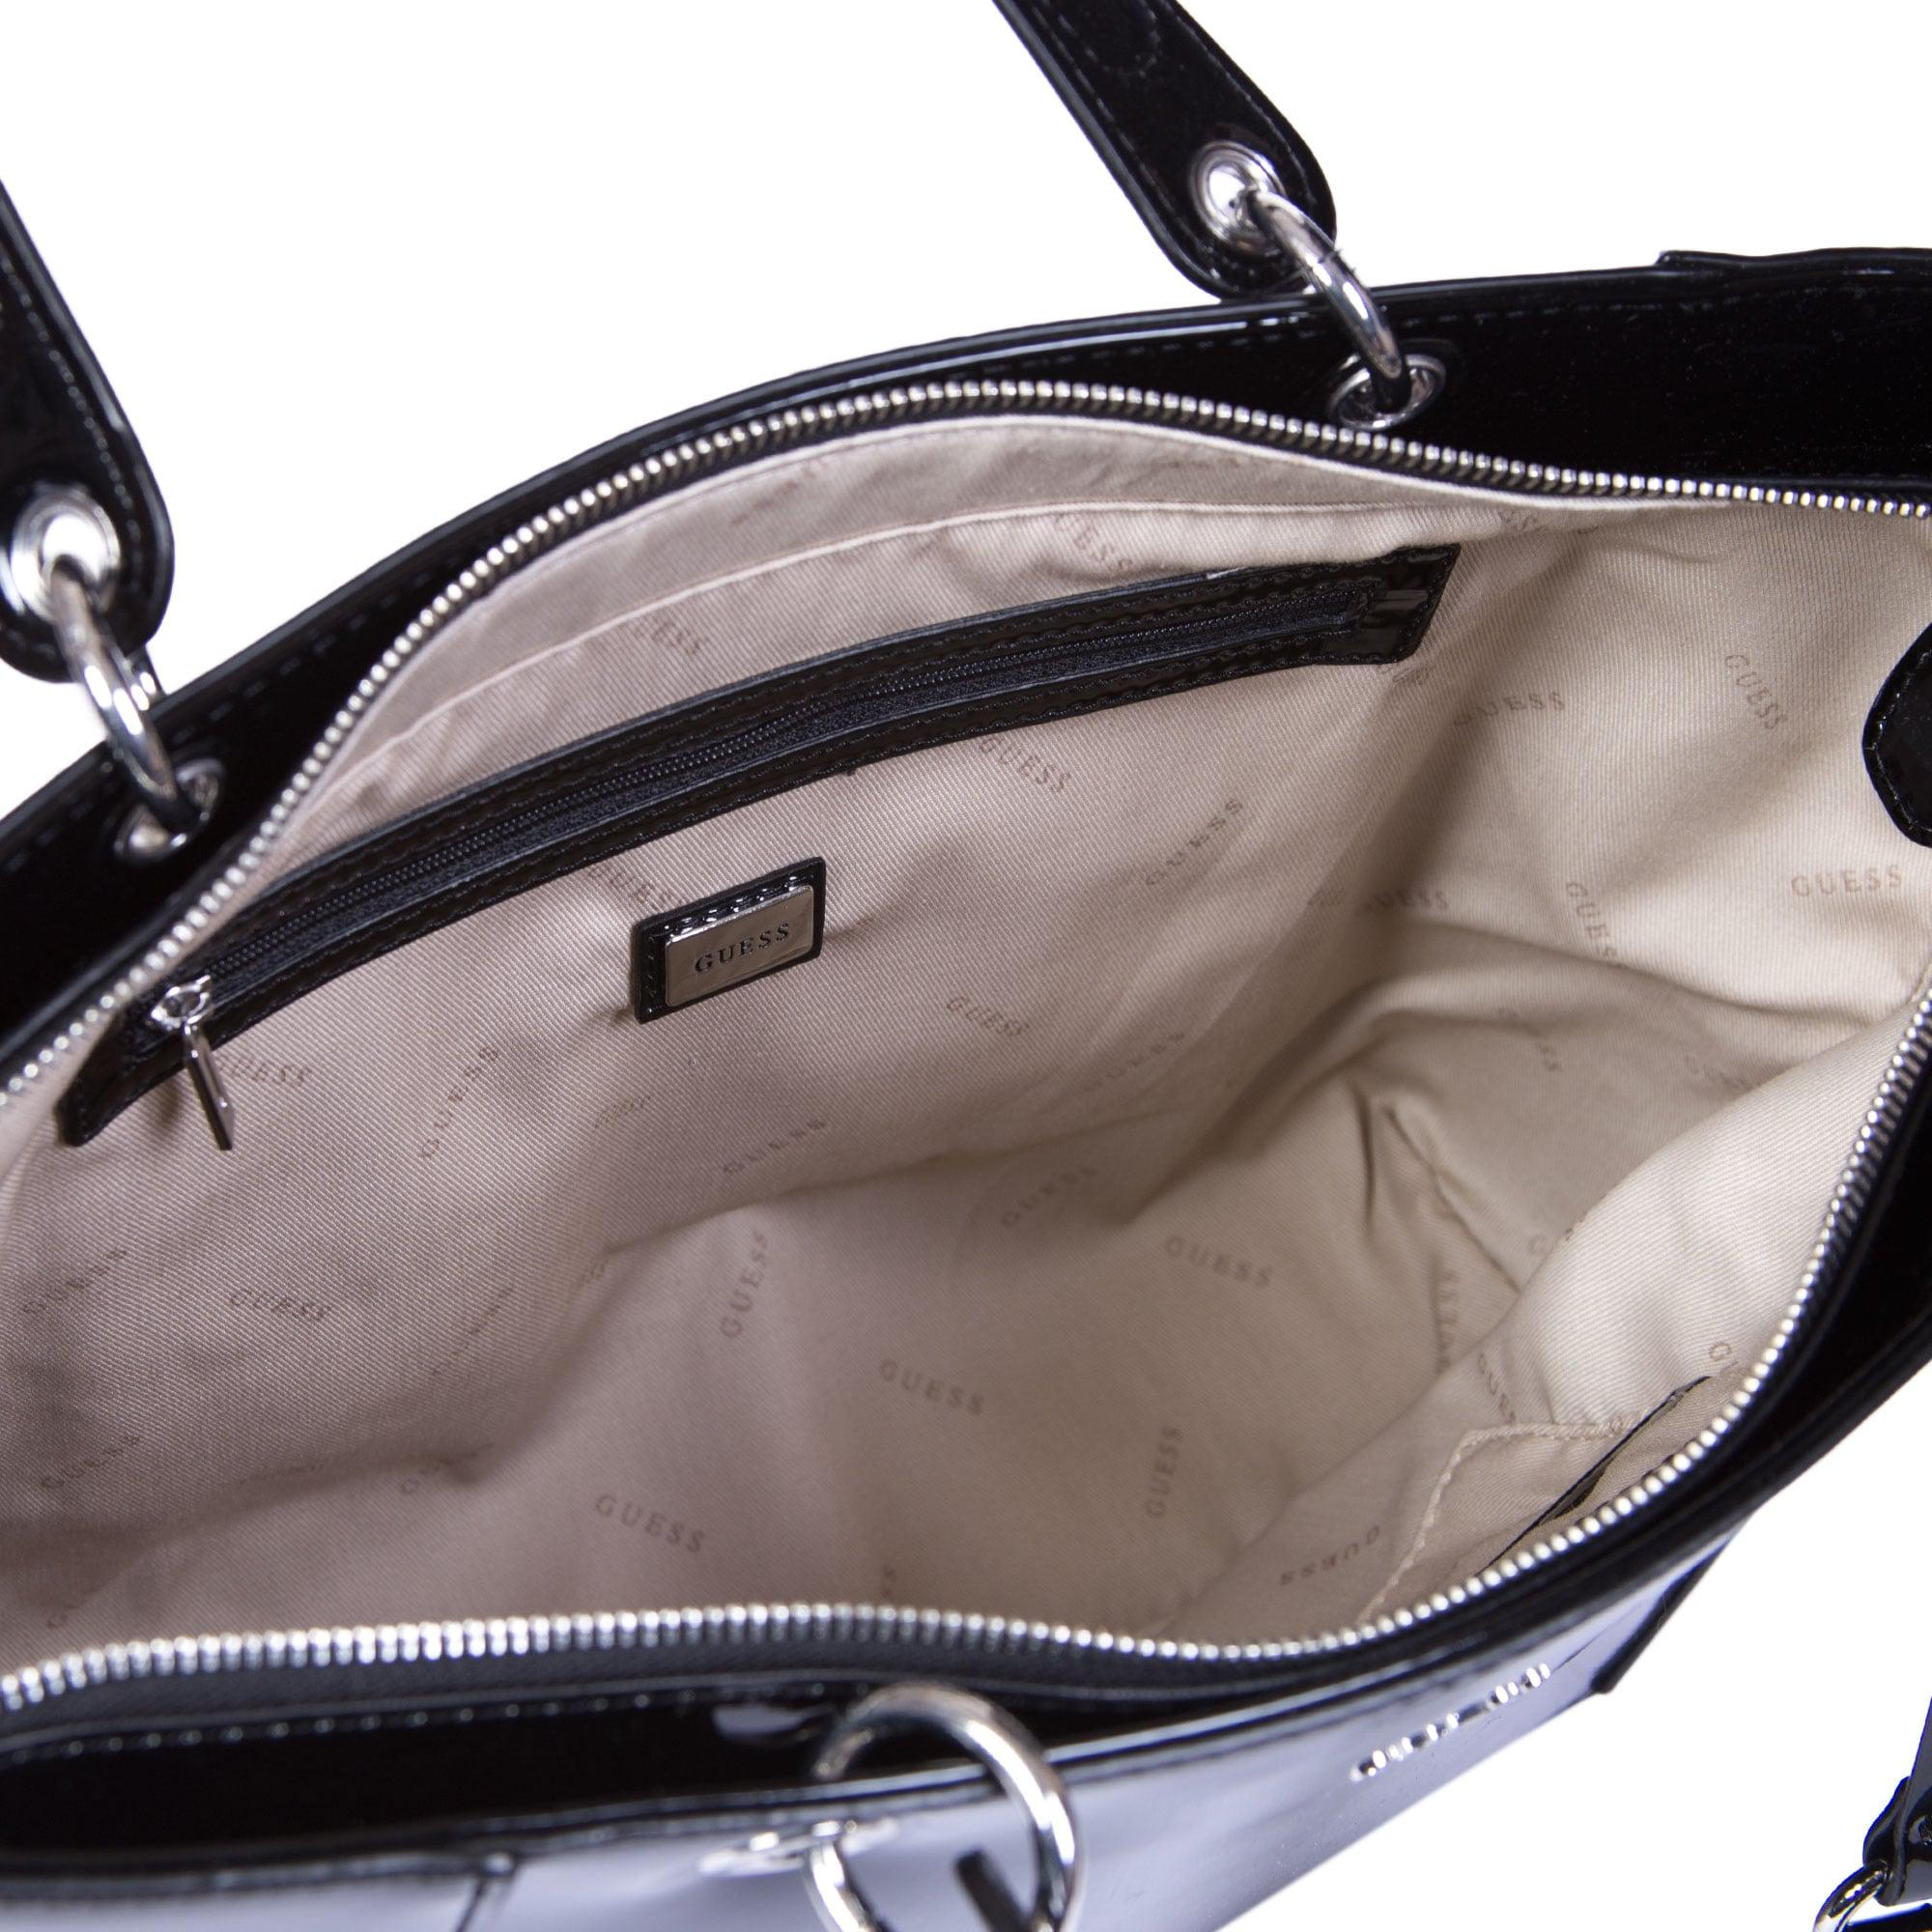 Guess Black Patent Leather Purse Best Image Ccdbb